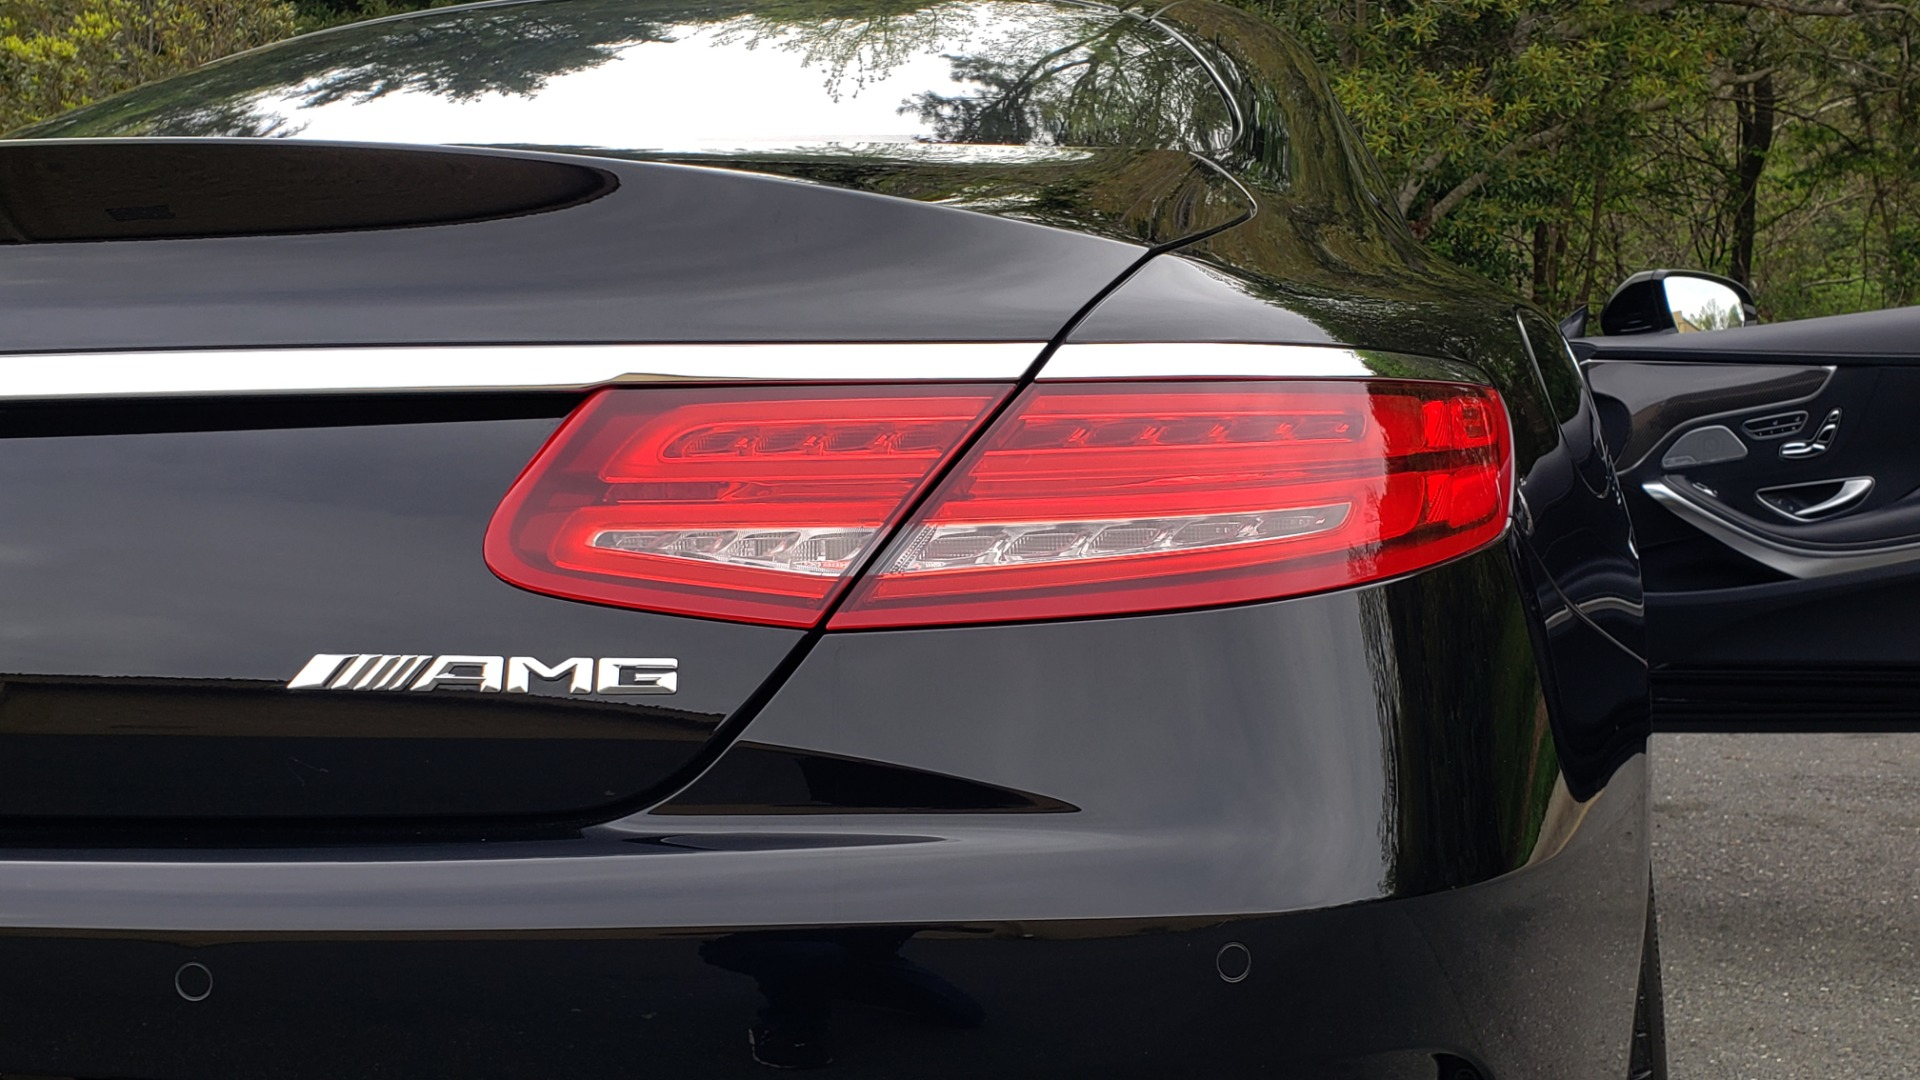 Used 2015 Mercedes-Benz S-CLASS S 63 AMG 4MATIC / DRVR ASST / NIGHT VIEW ASST PLUS / MAGIC SKY for sale Sold at Formula Imports in Charlotte NC 28227 40